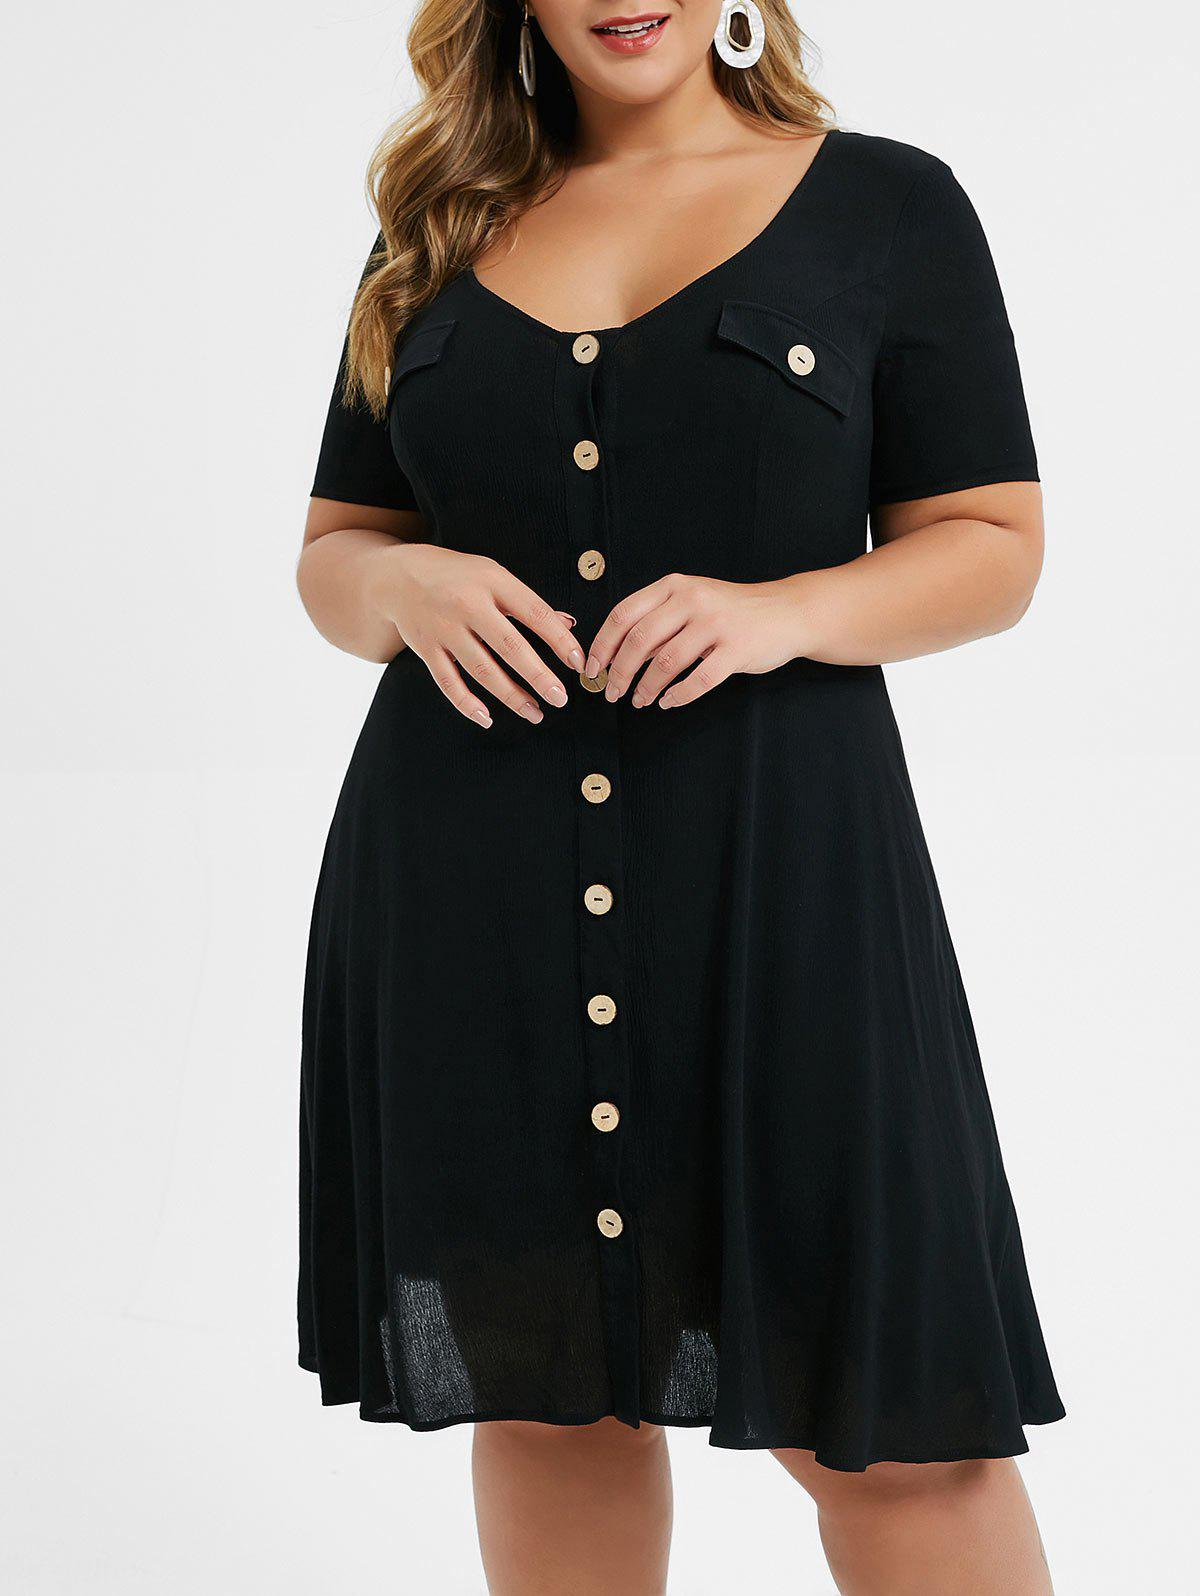 Trendy Plus Size Button Up Knee Length Dress